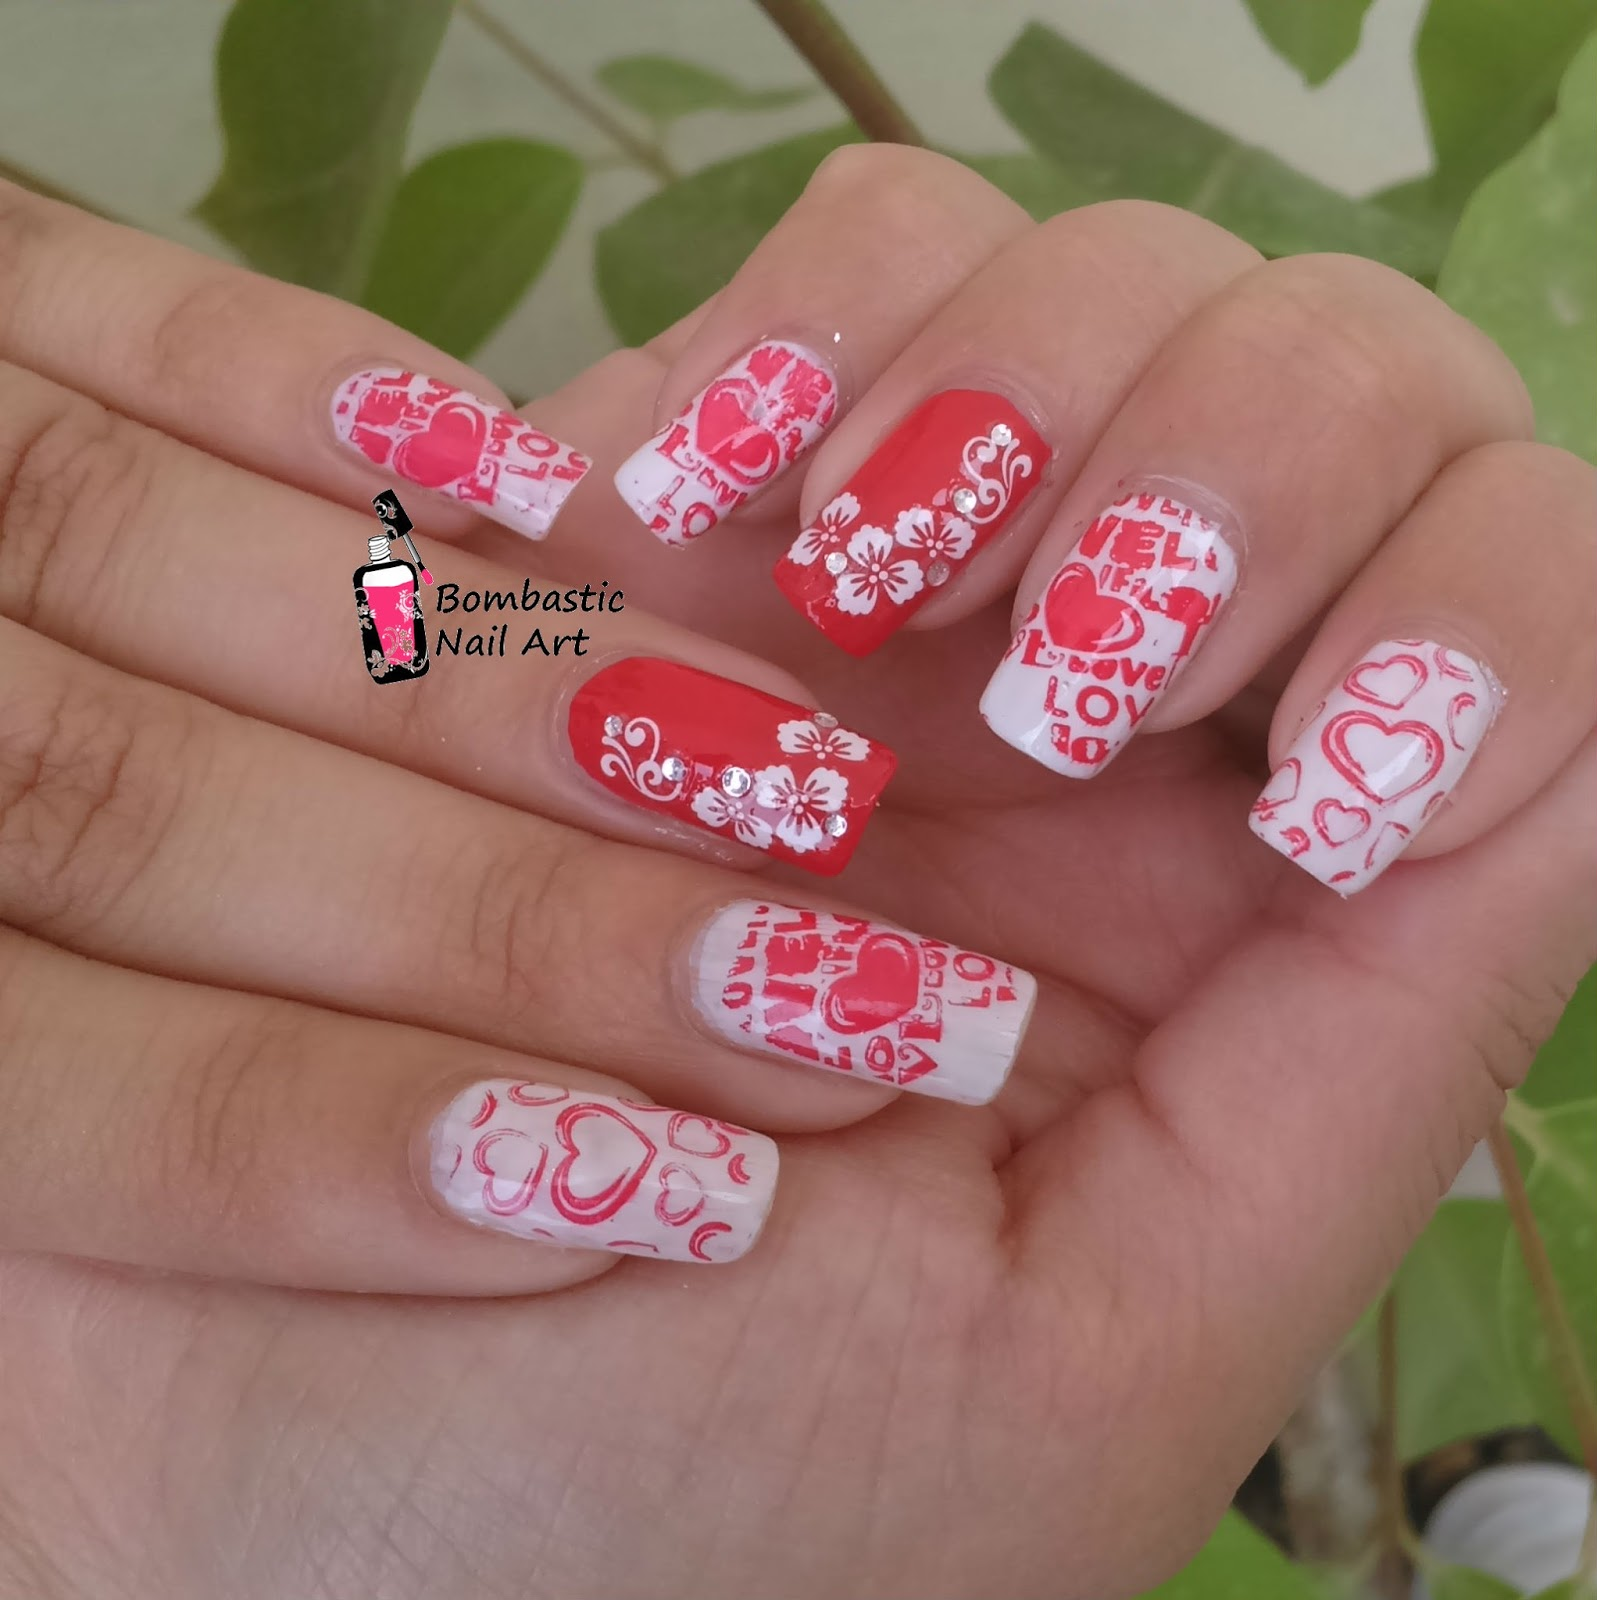 25 amazing valentines day nail art ideas bombastic nail art valentines day nailart 2g prinsesfo Images